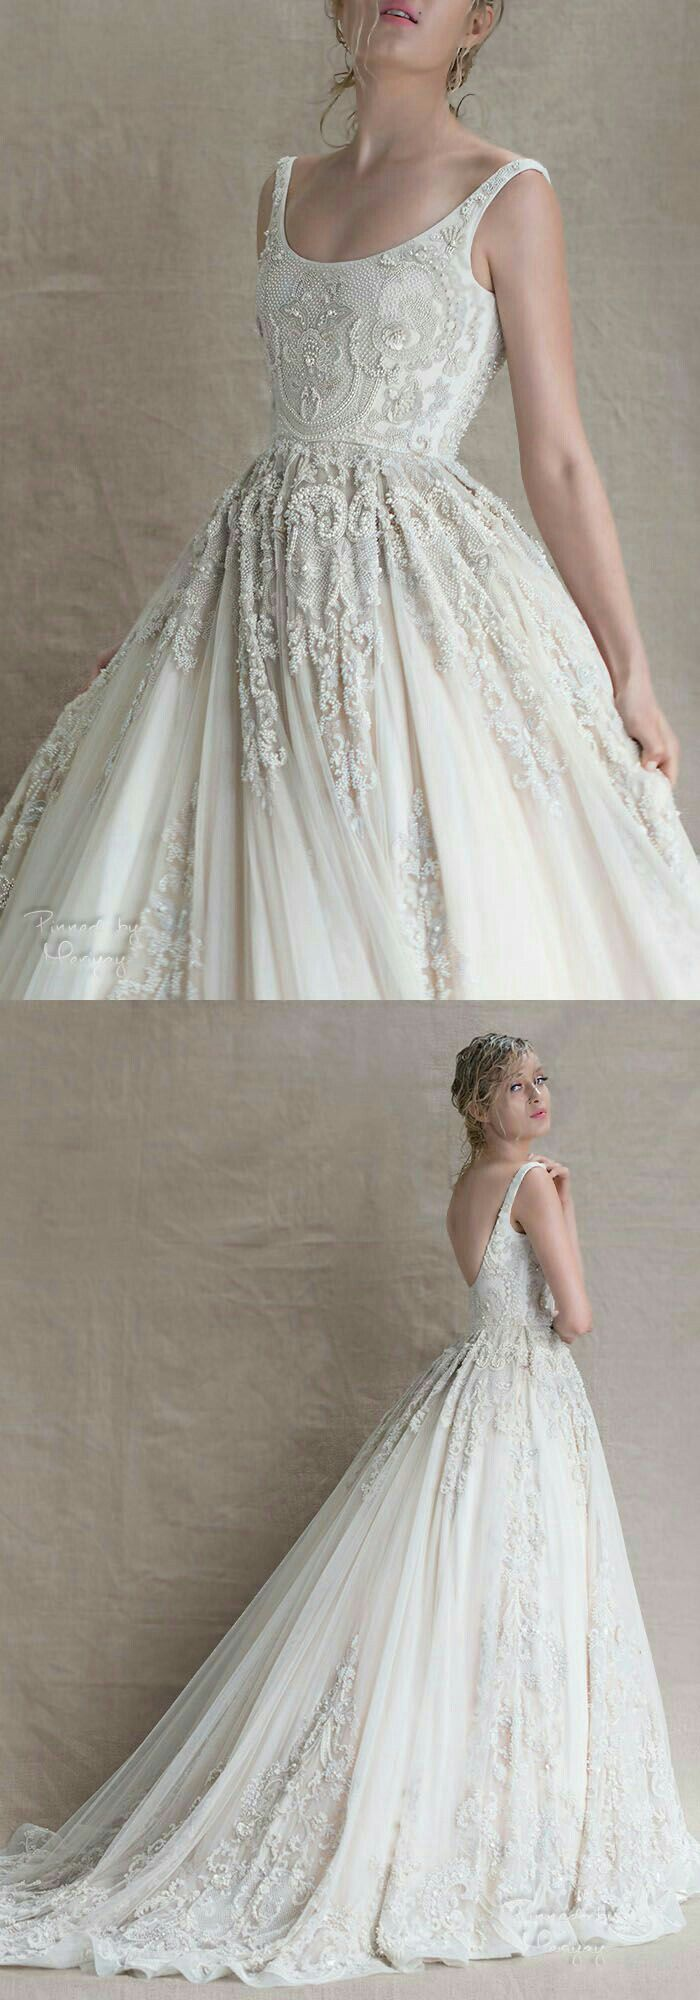 If this had better sleeves, it would be the most beautiful dress ...